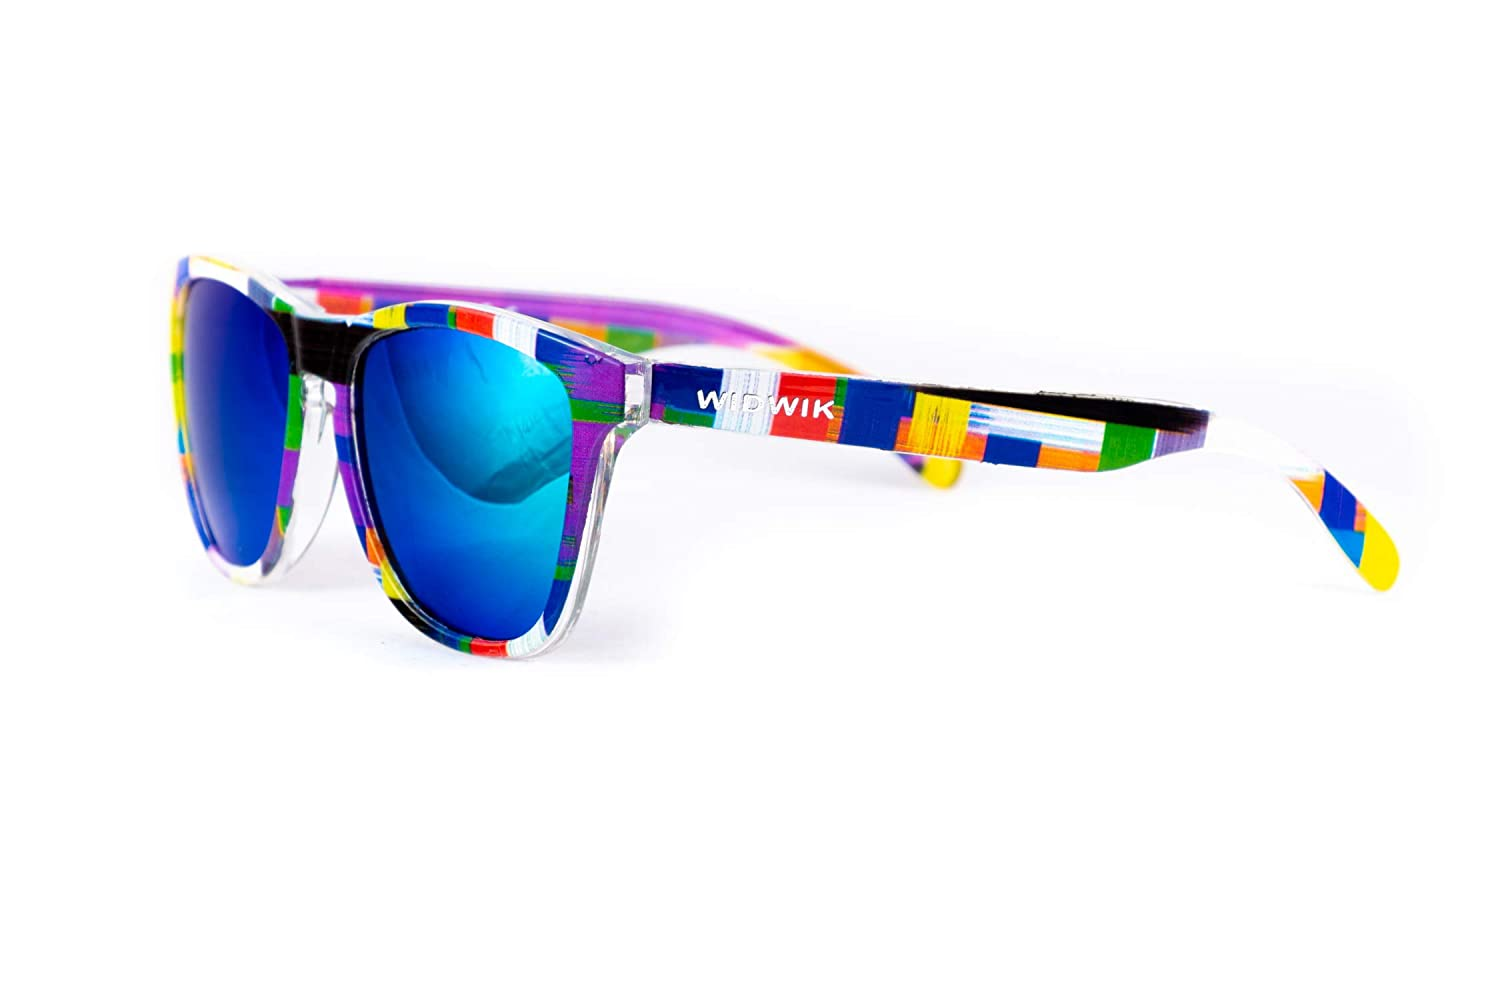 Holi Glasses Festival Of Colours del marchio Widwik